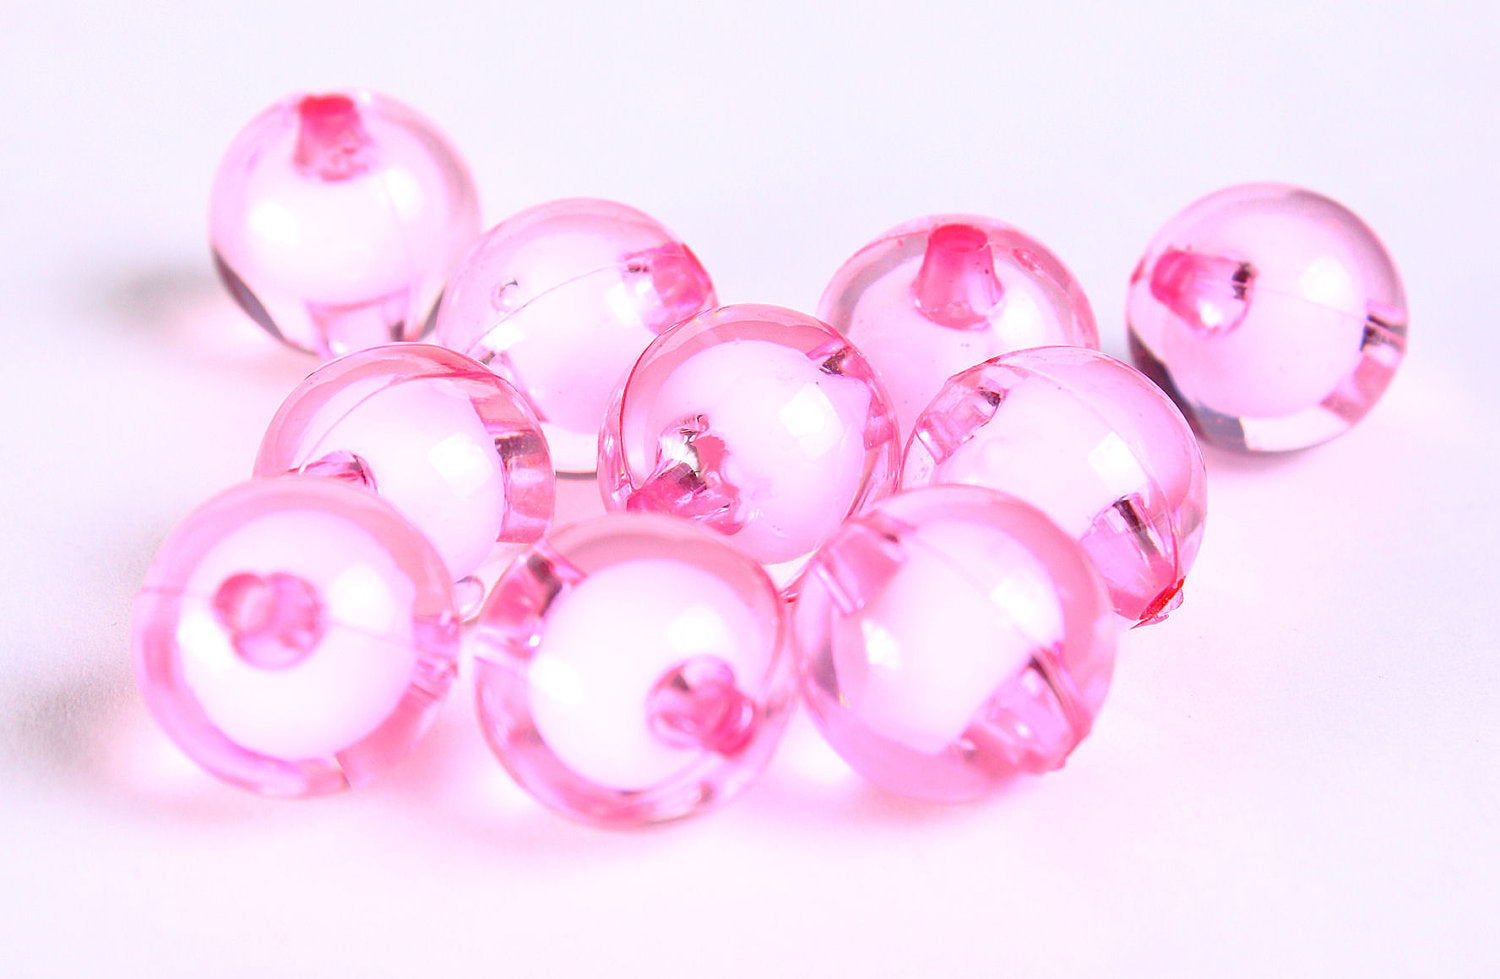 12mm pink miracle beads - bead in bead - Round beads - Gumball Bead - Clear beads - Gum ball beads - 10 pieces (453)